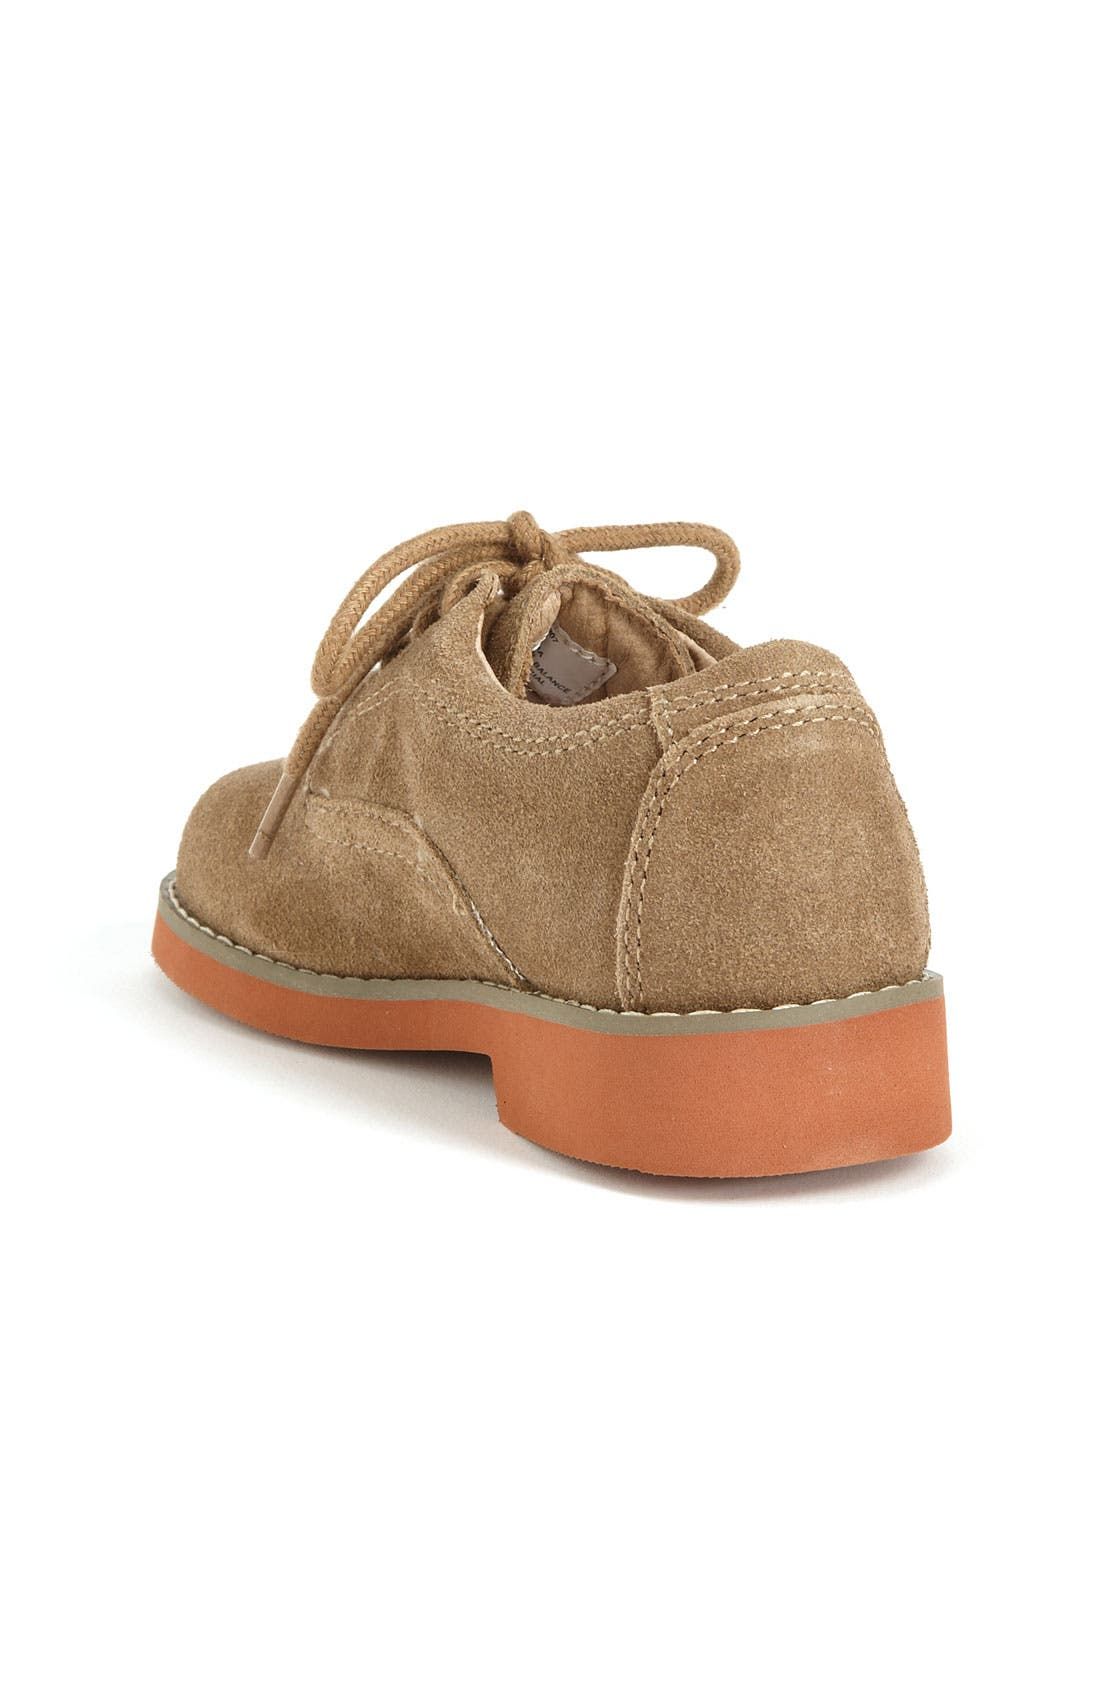 Alternate Image 2  - Jumping Jacks 'Buck' Oxford Shoe (Toddler, Little Kid & Big Kid)